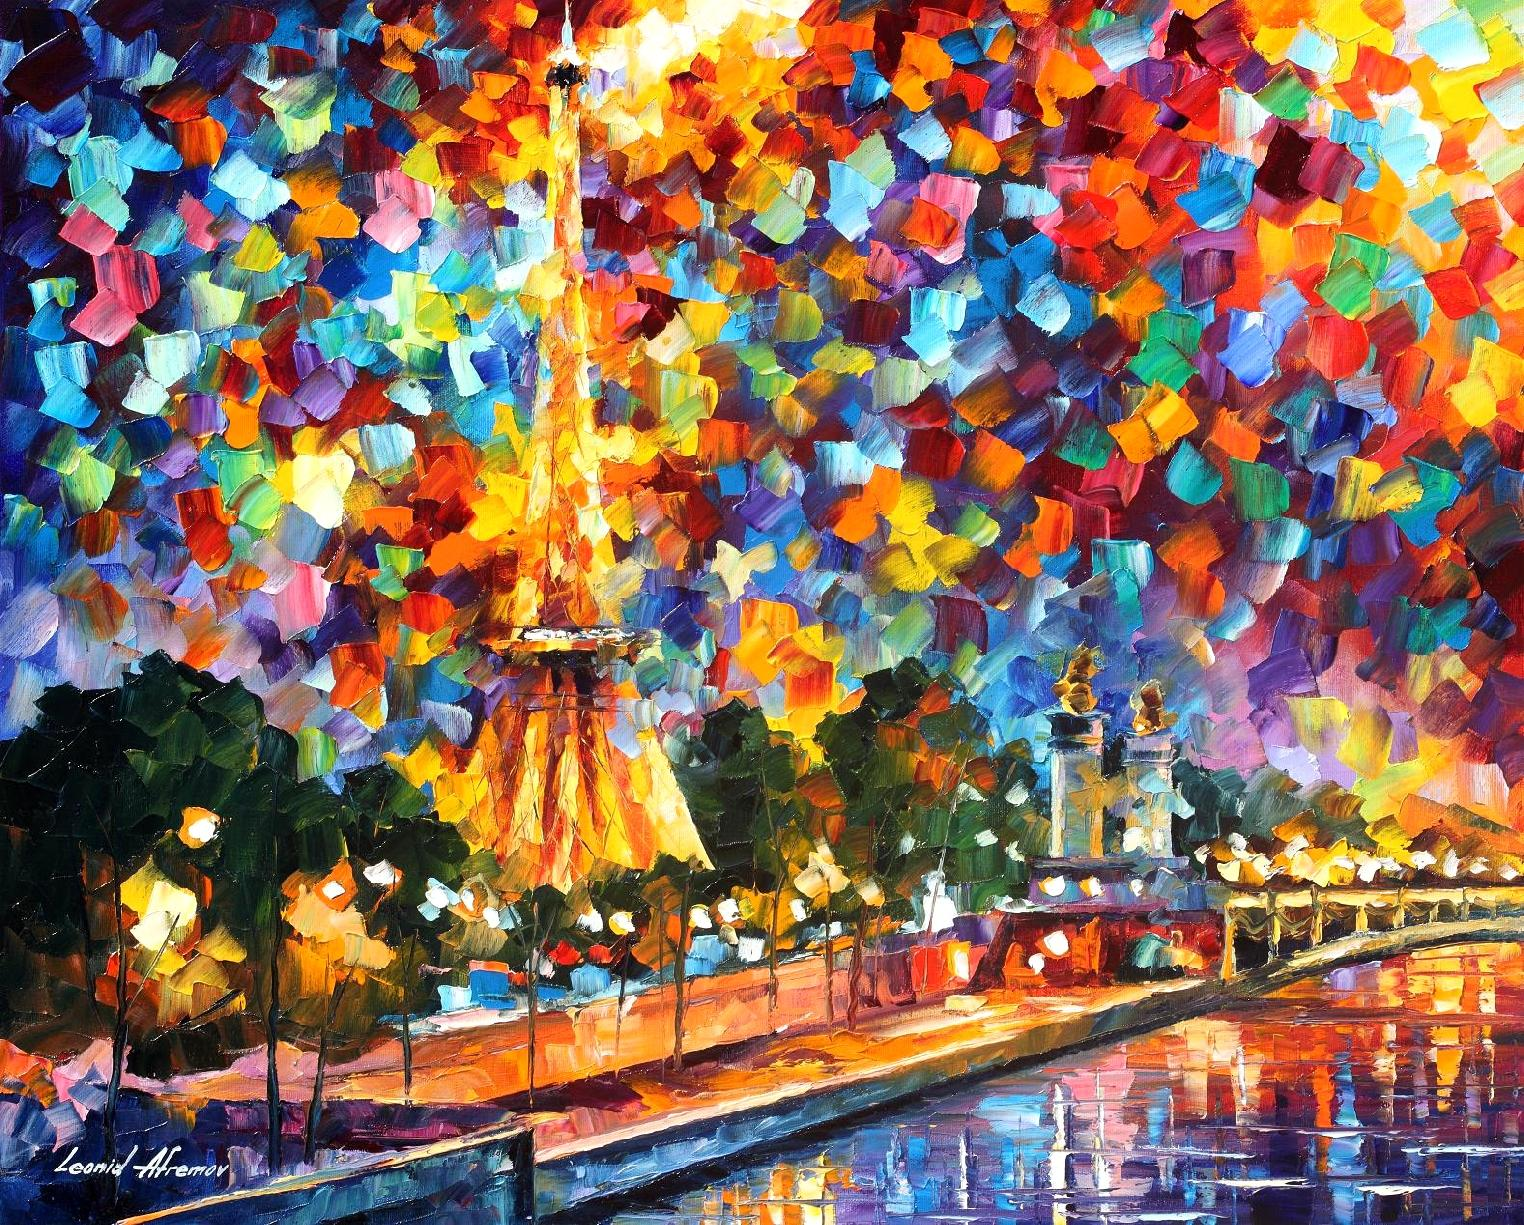 "NIGHT IN PARIS  - Limited Edition Giclee on Canvas  By Leonid Afremov - 30X24"" (75cm x 60cm) (piece number 1/25)"